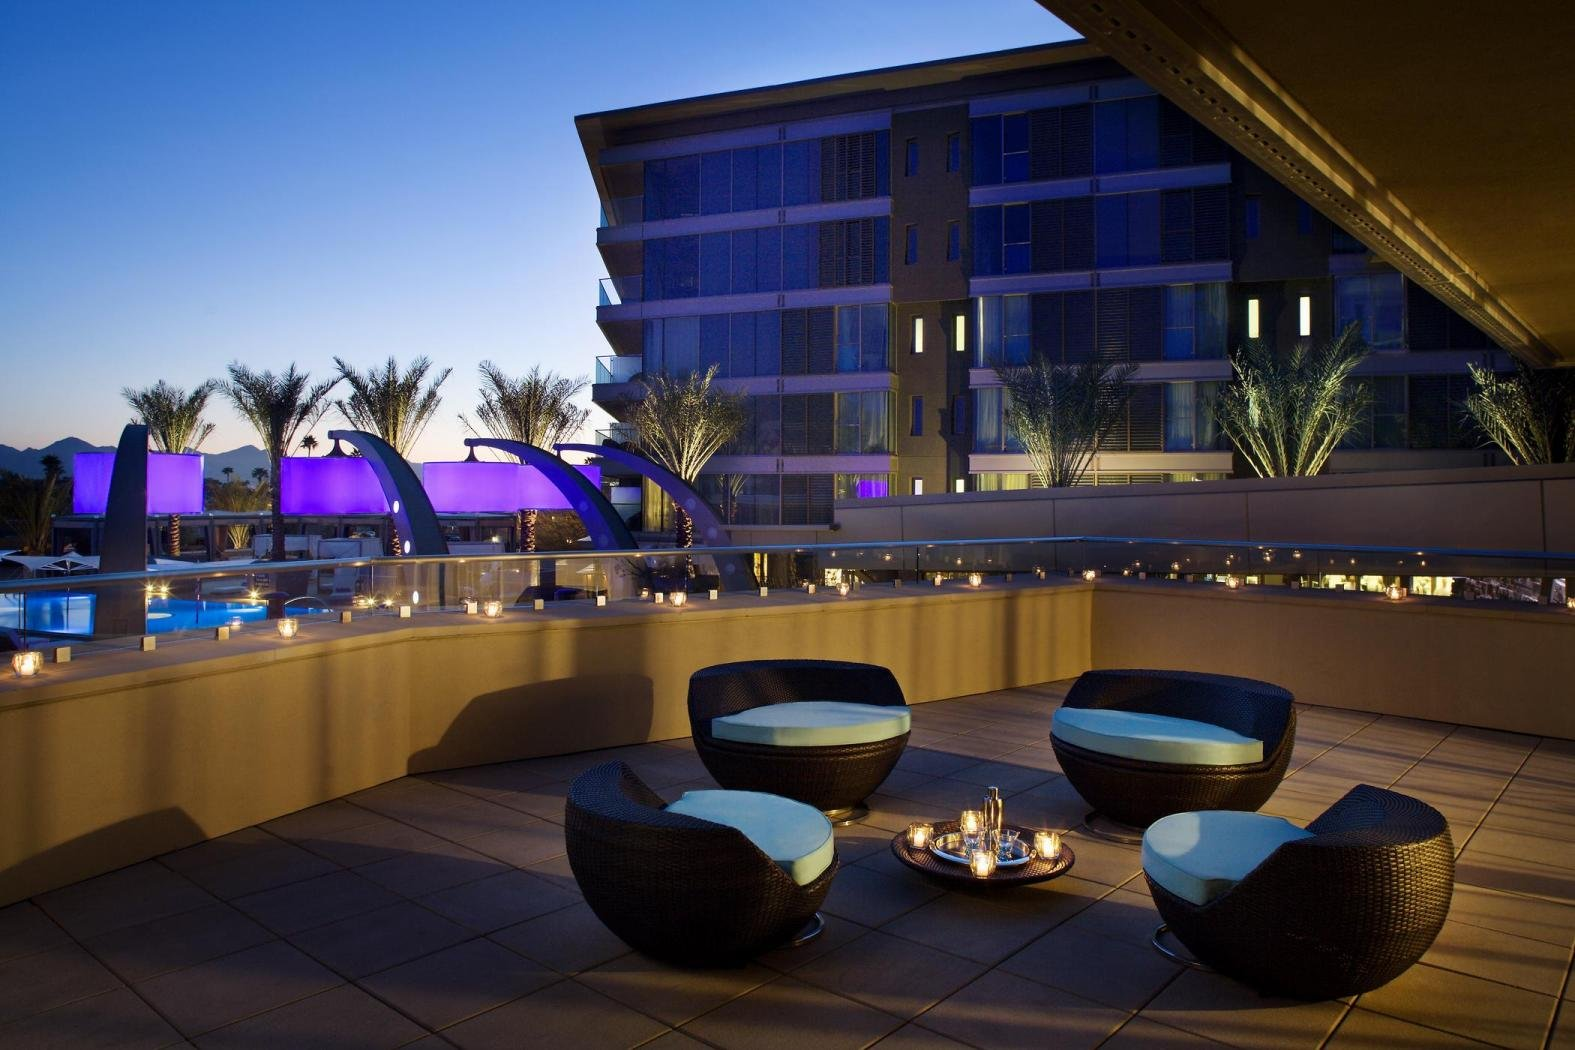 W scottsdale makes list of trendiest hotels in the u s for Trendiest hotels in chicago